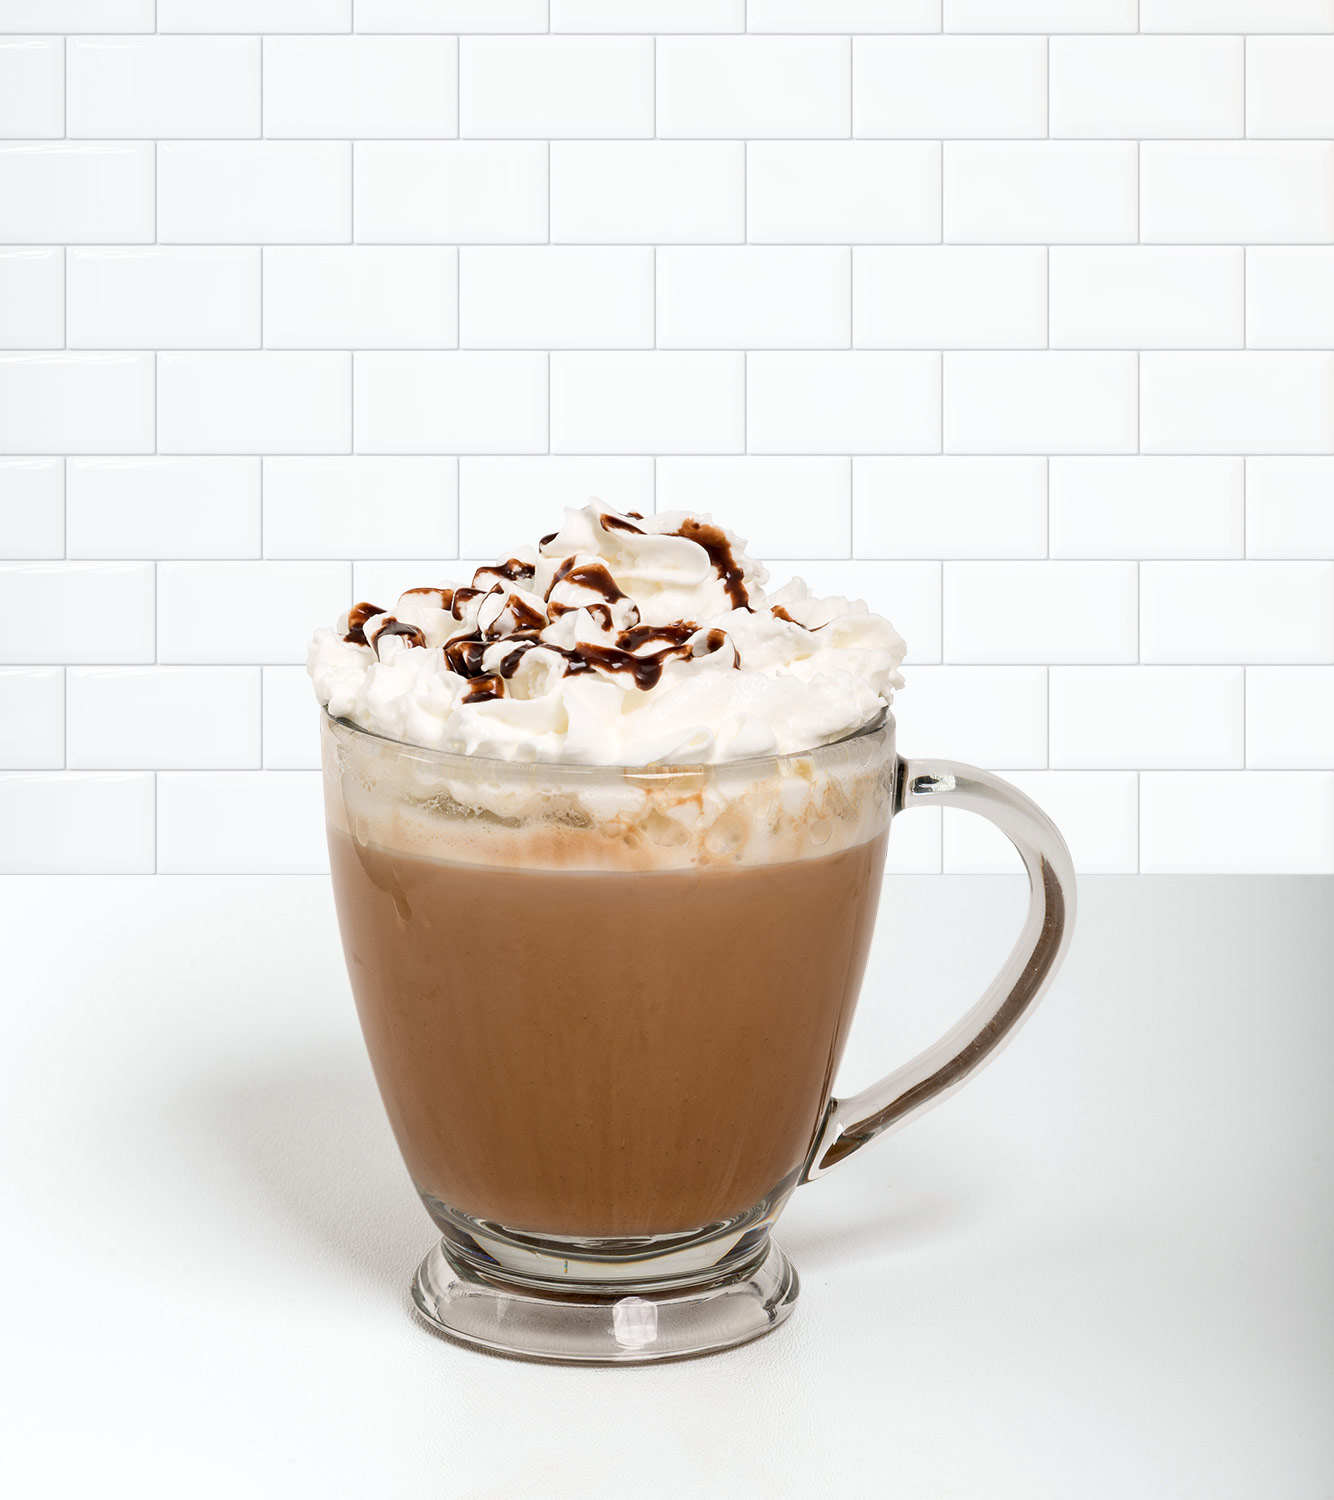 Mocha Latte in a beverage container